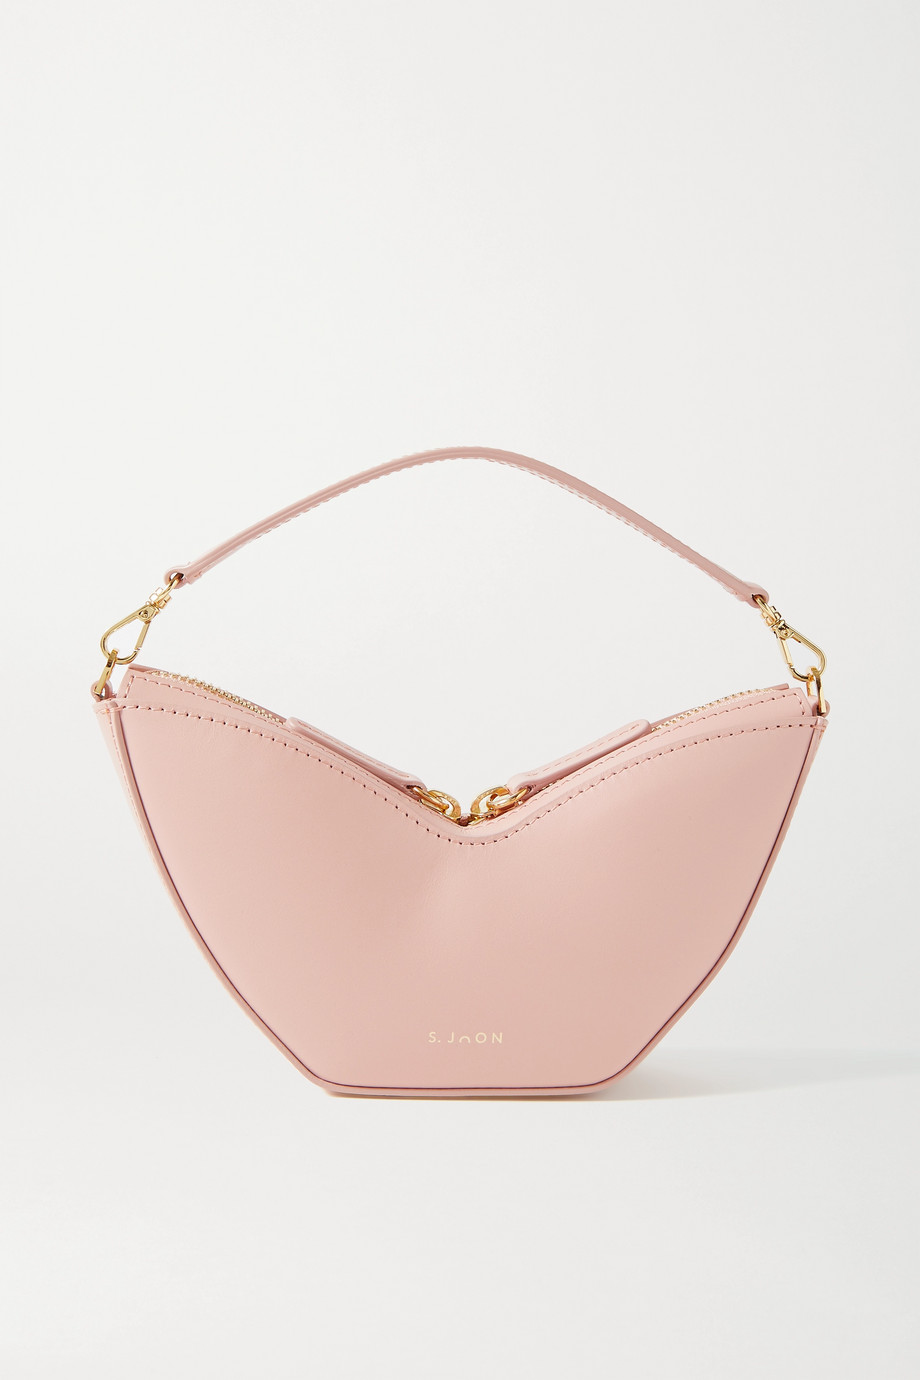 S.Joon Tulip mini leather shoulder bag